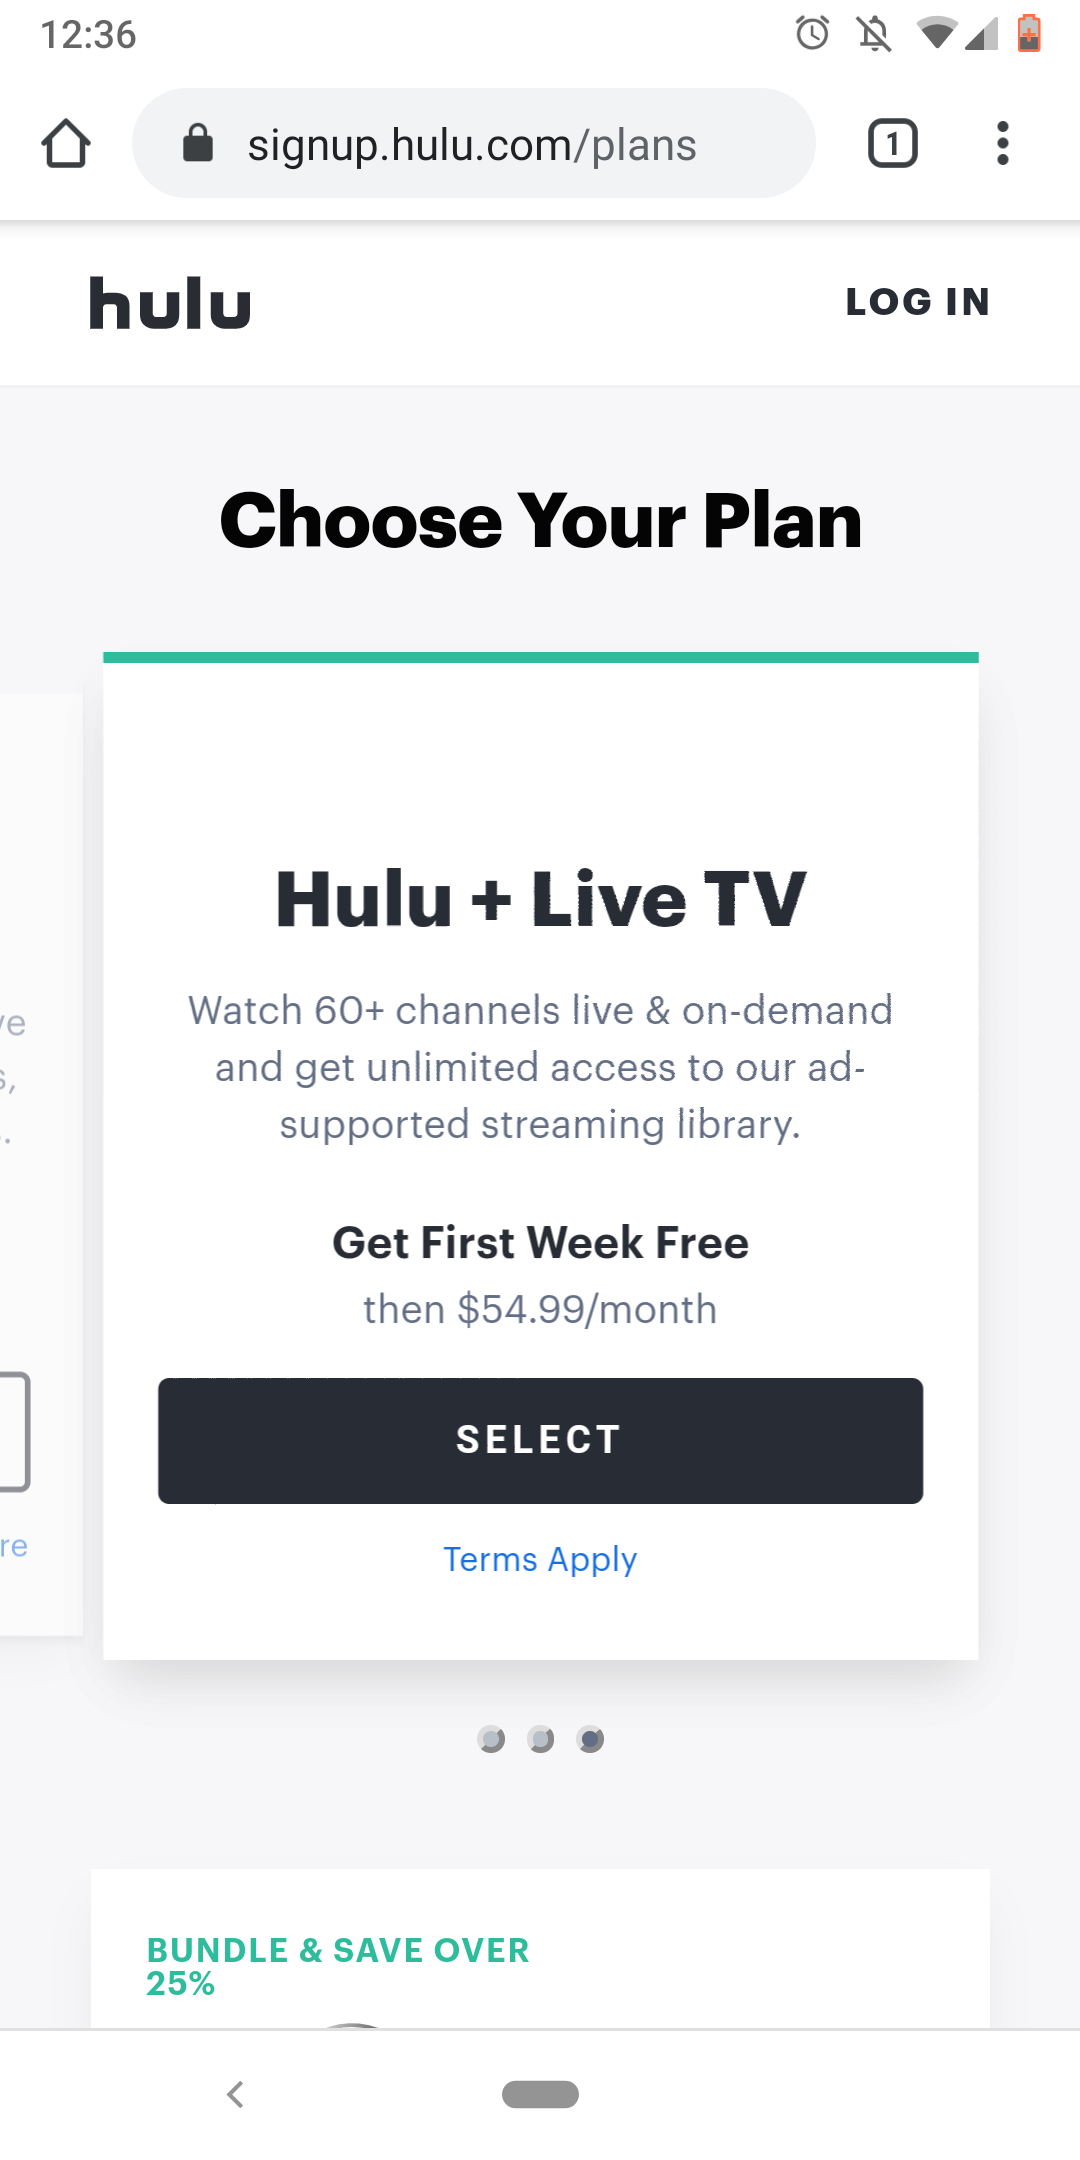 Hulu streaming with 60+ live on demand channel